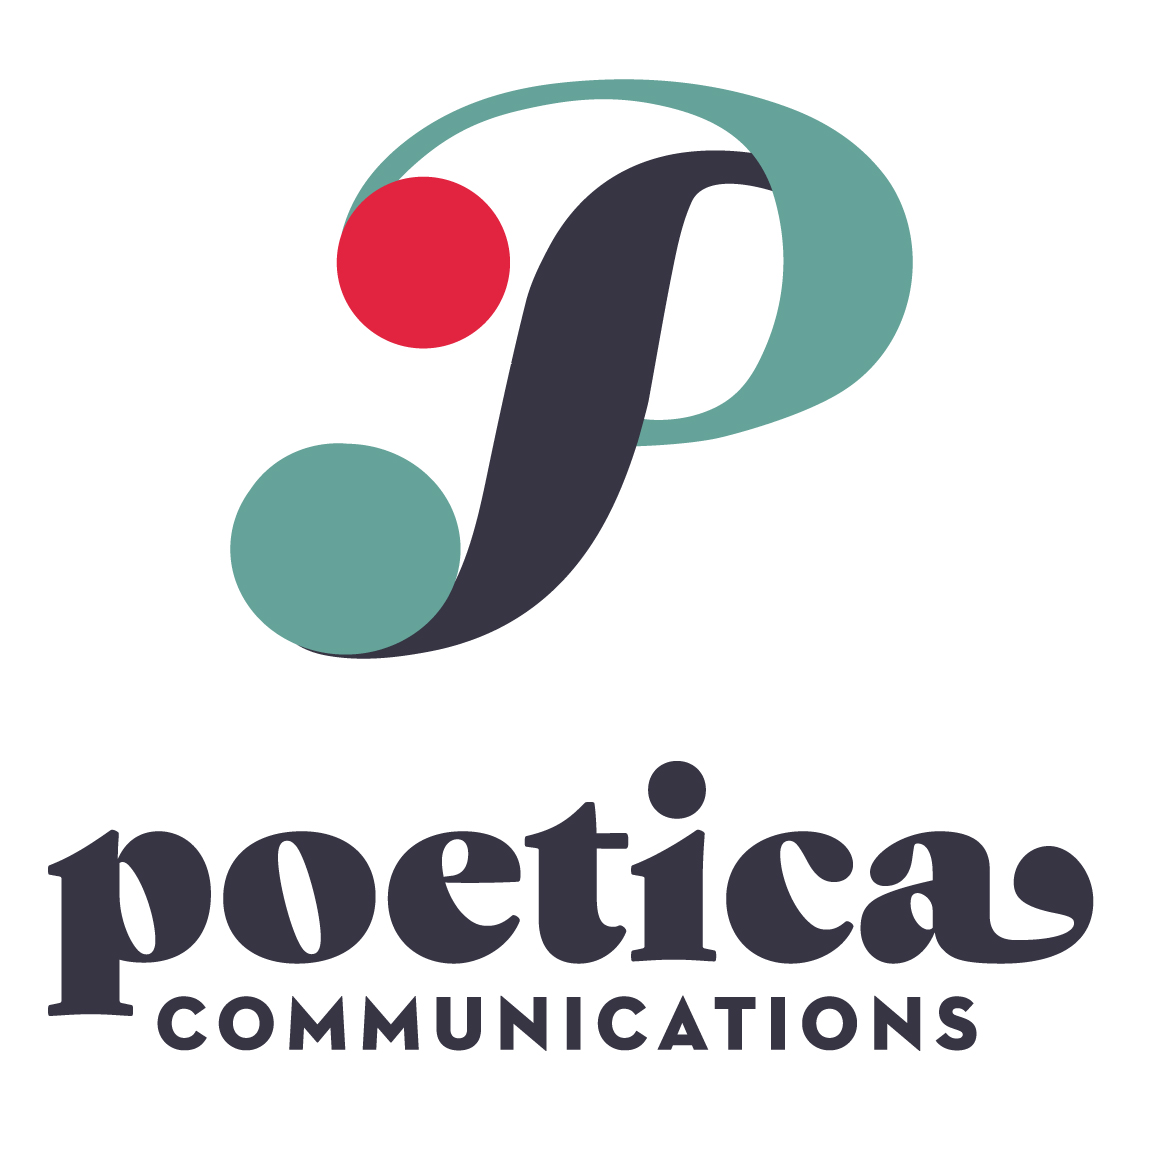 Poetica Communications